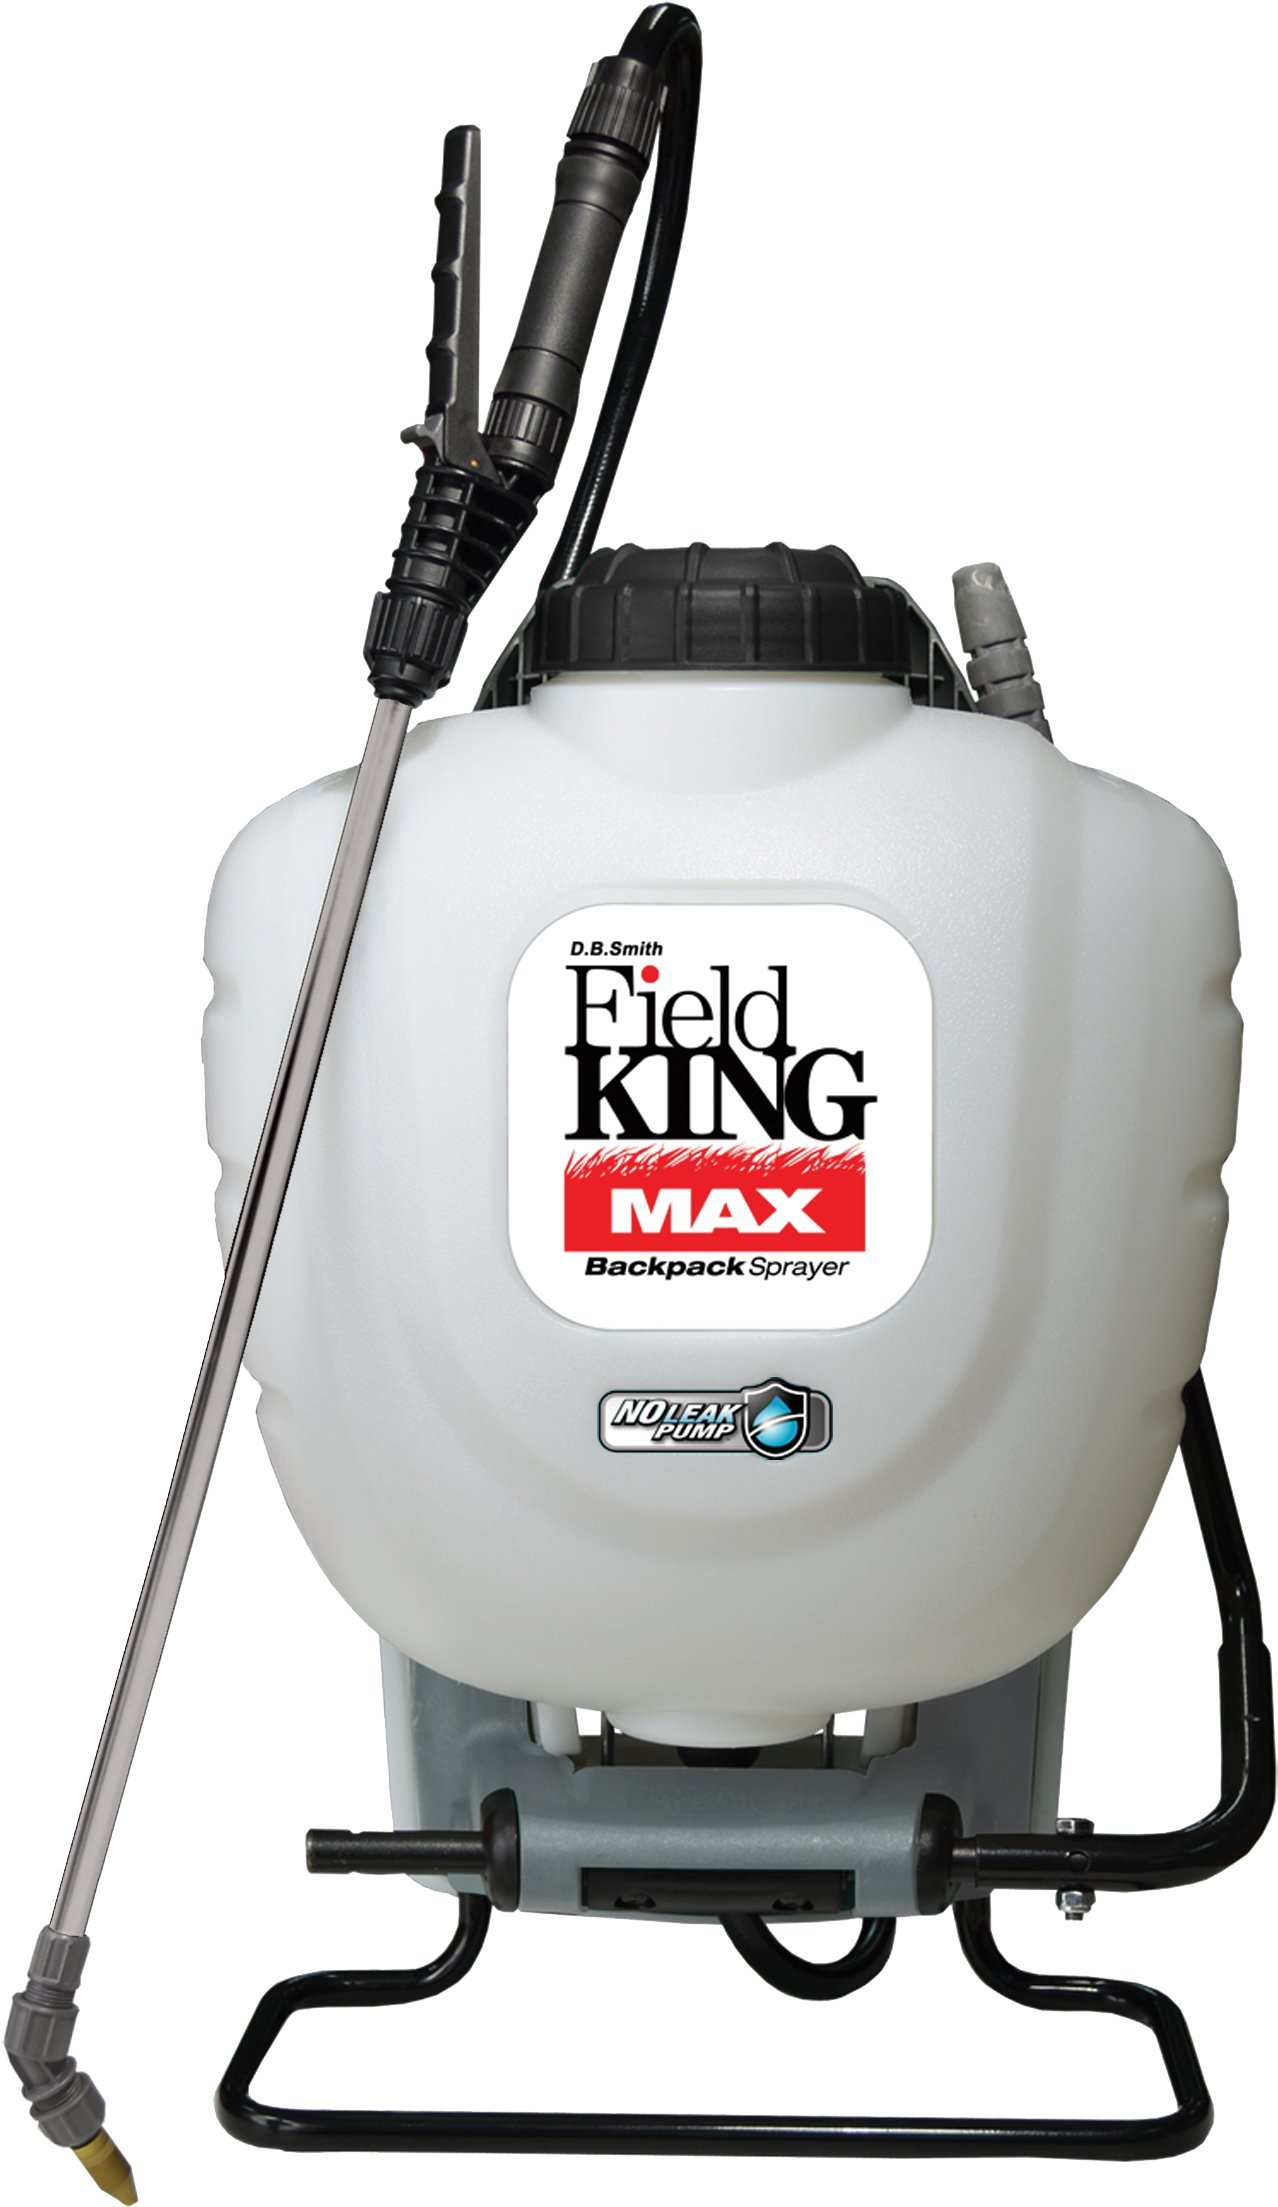 Field King Max 190348 Backpack Sprayer for Professionals Applying Herbicides